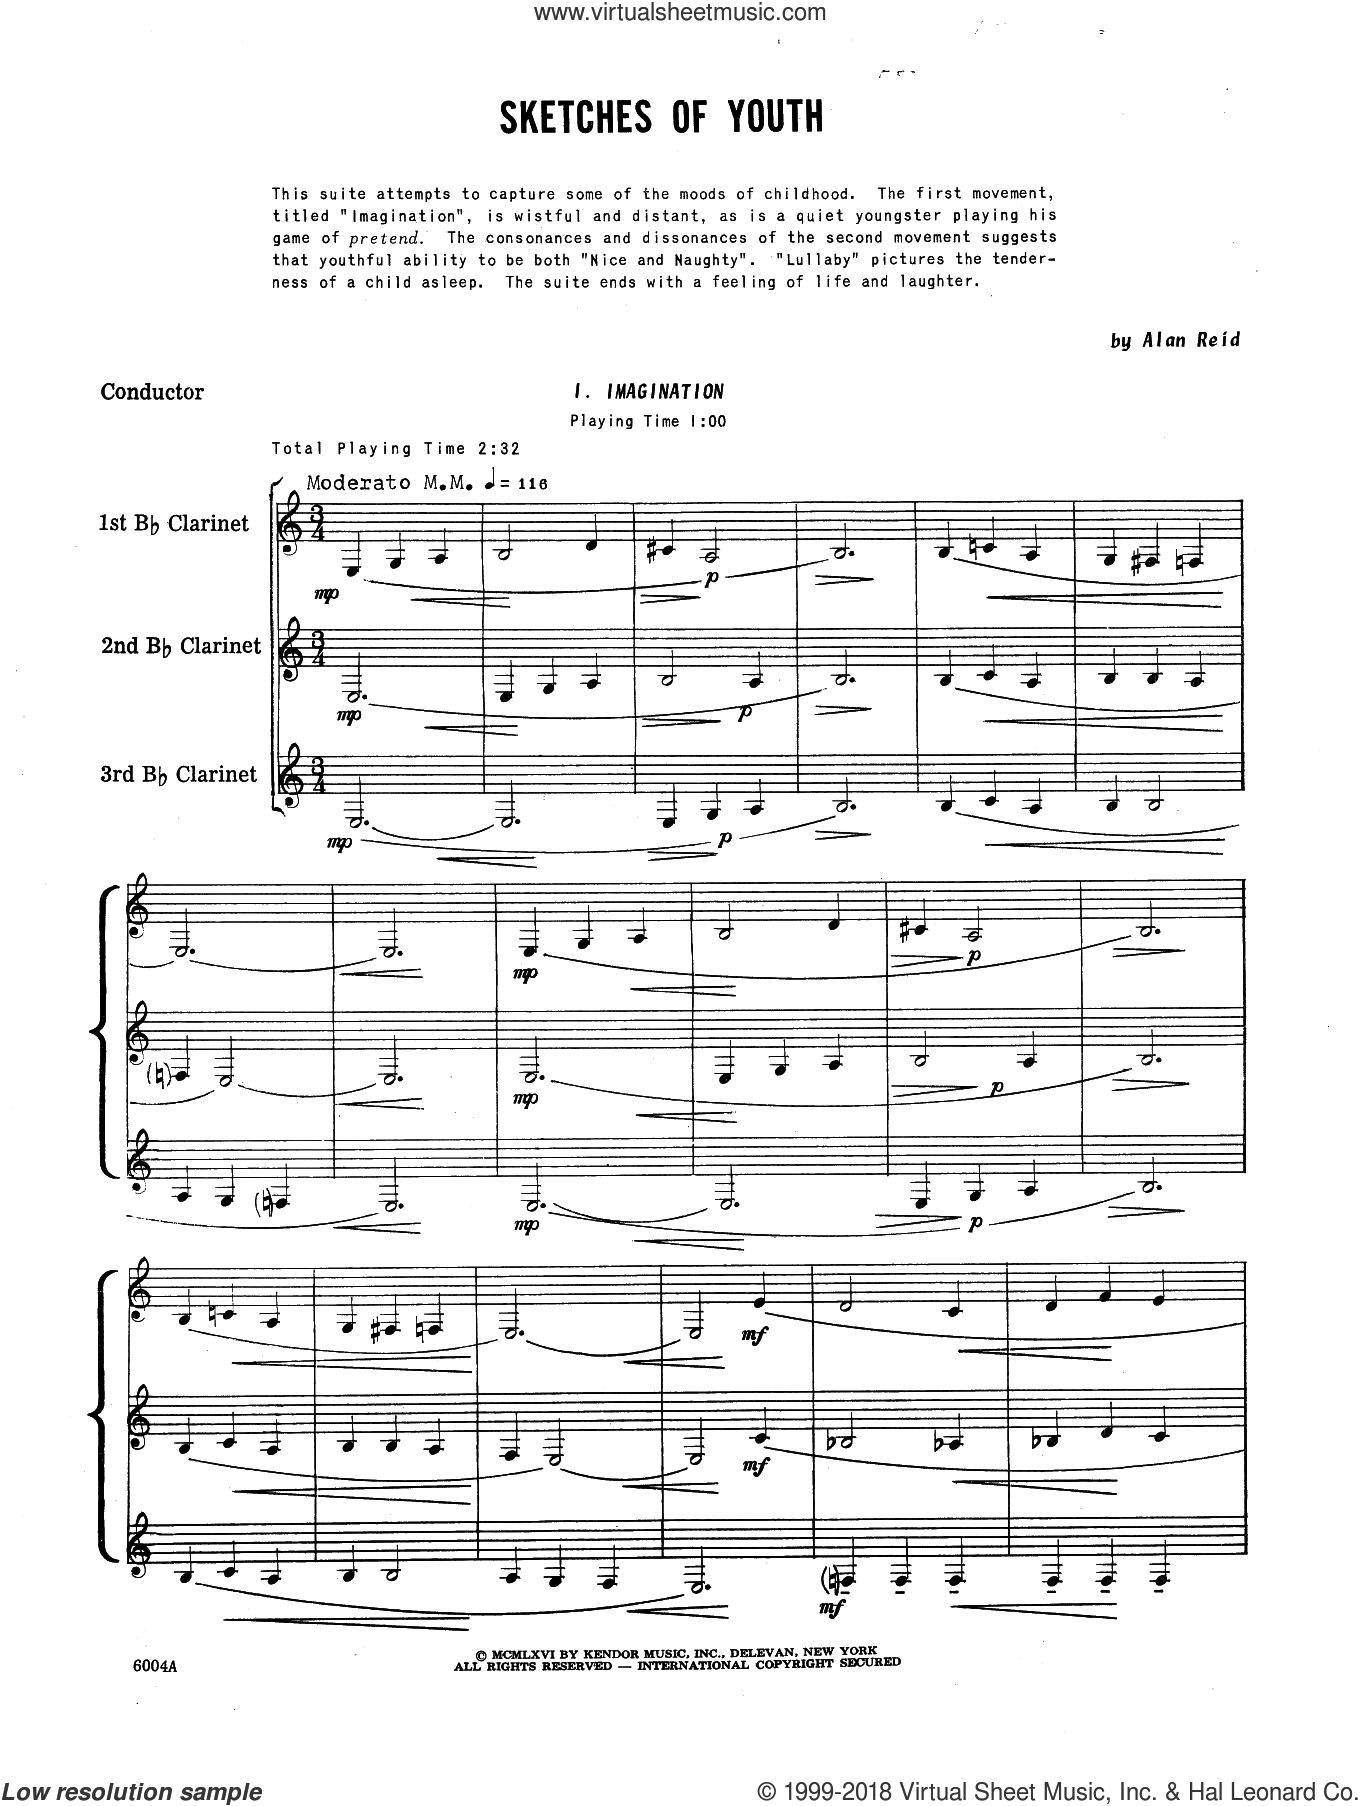 Sketches Of Youth (COMPLETE) sheet music for clarinet trio by Reid, intermediate. Score Image Preview.